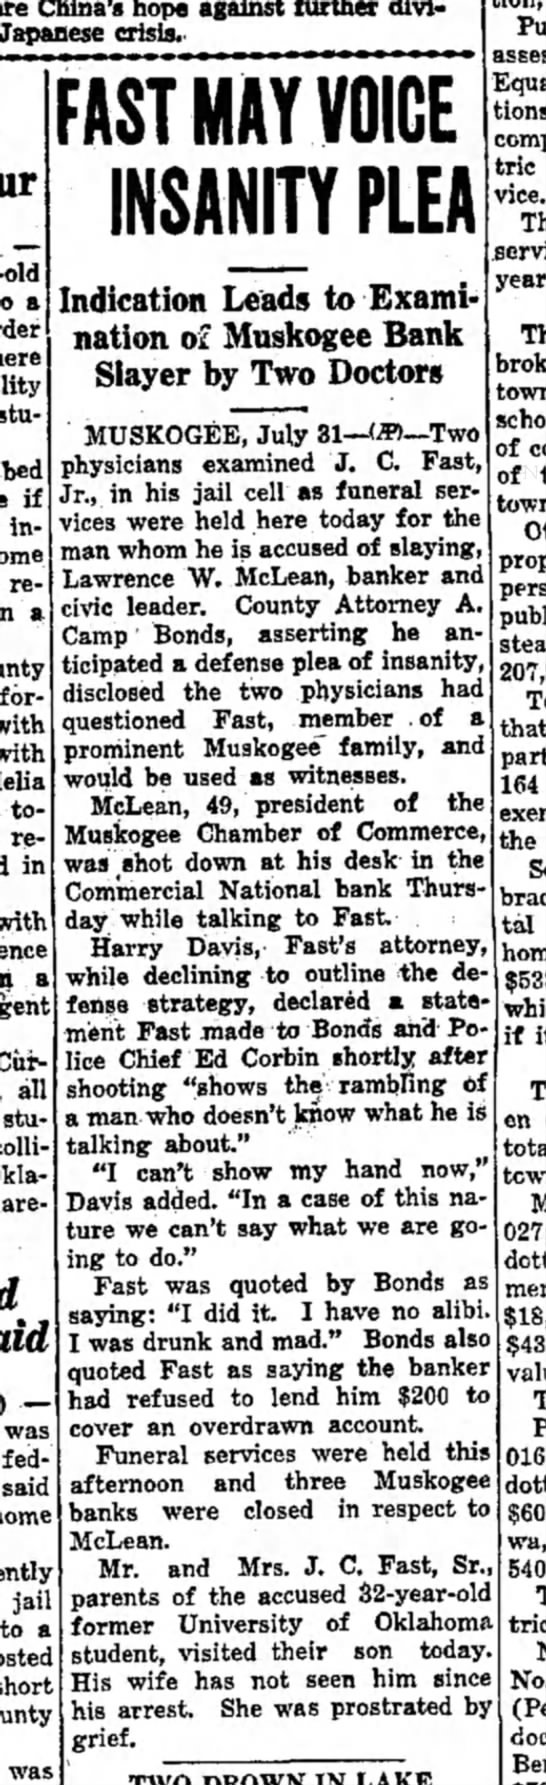 J.C. Fast may plead insanity article in Miami, OK paper 1 Aug 1937